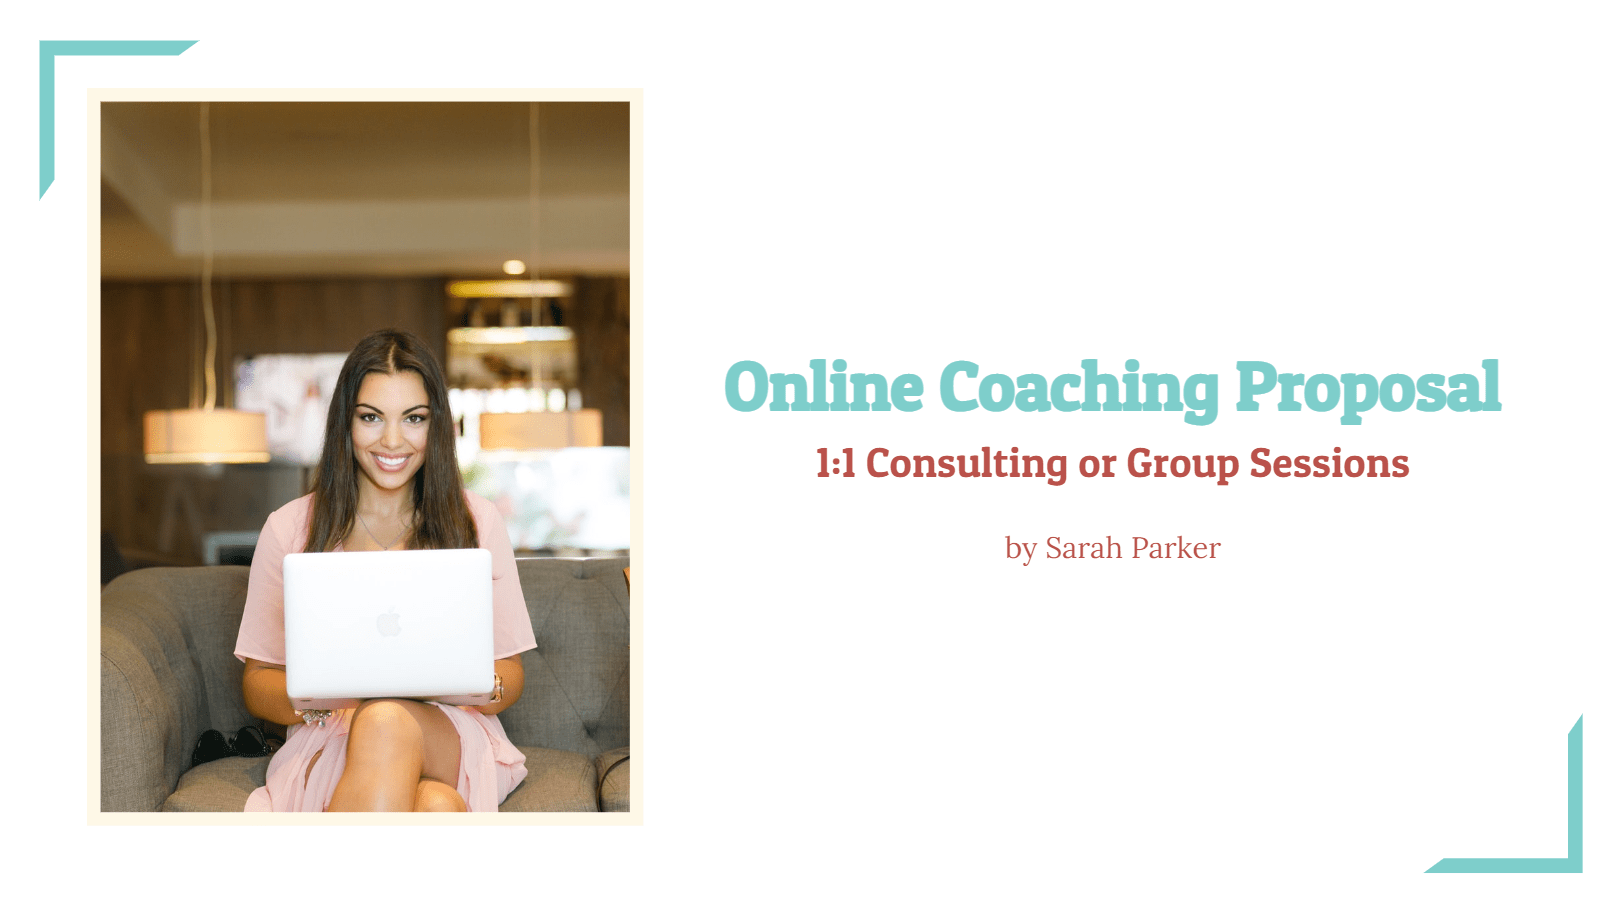 This online coaching proposal template is perfect for coaches that are trying to close a deal with their customers easily. With the form layout, they can generate leads and create a list of potential clients to further marketing. By using this template they can introduce themselves, their services, payment plans, and close the deal all in one platform!